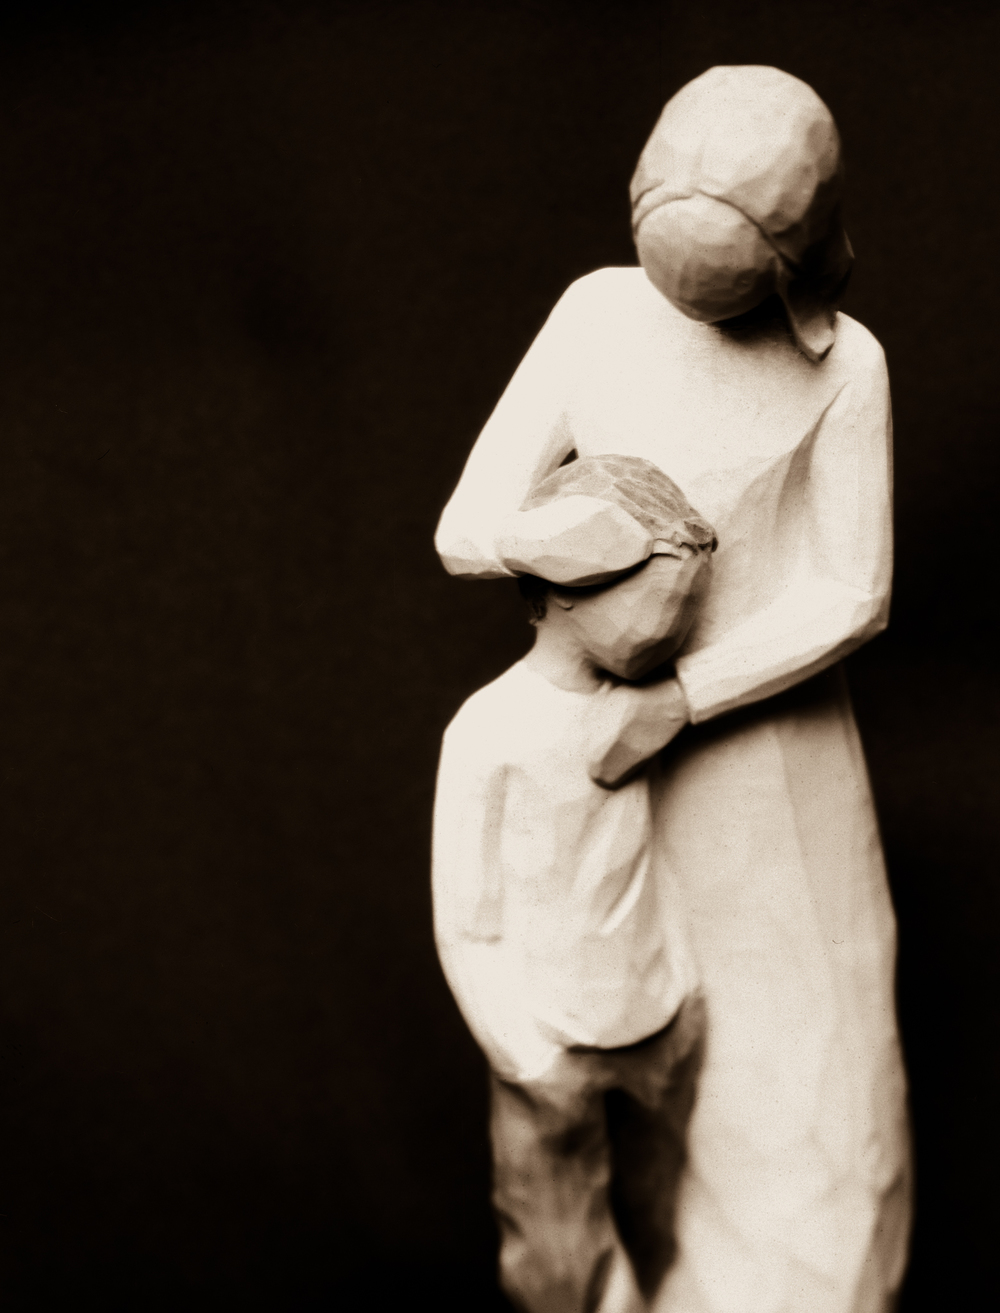 4x5_for_365_project_050_Mother_Son_Statue.jpg